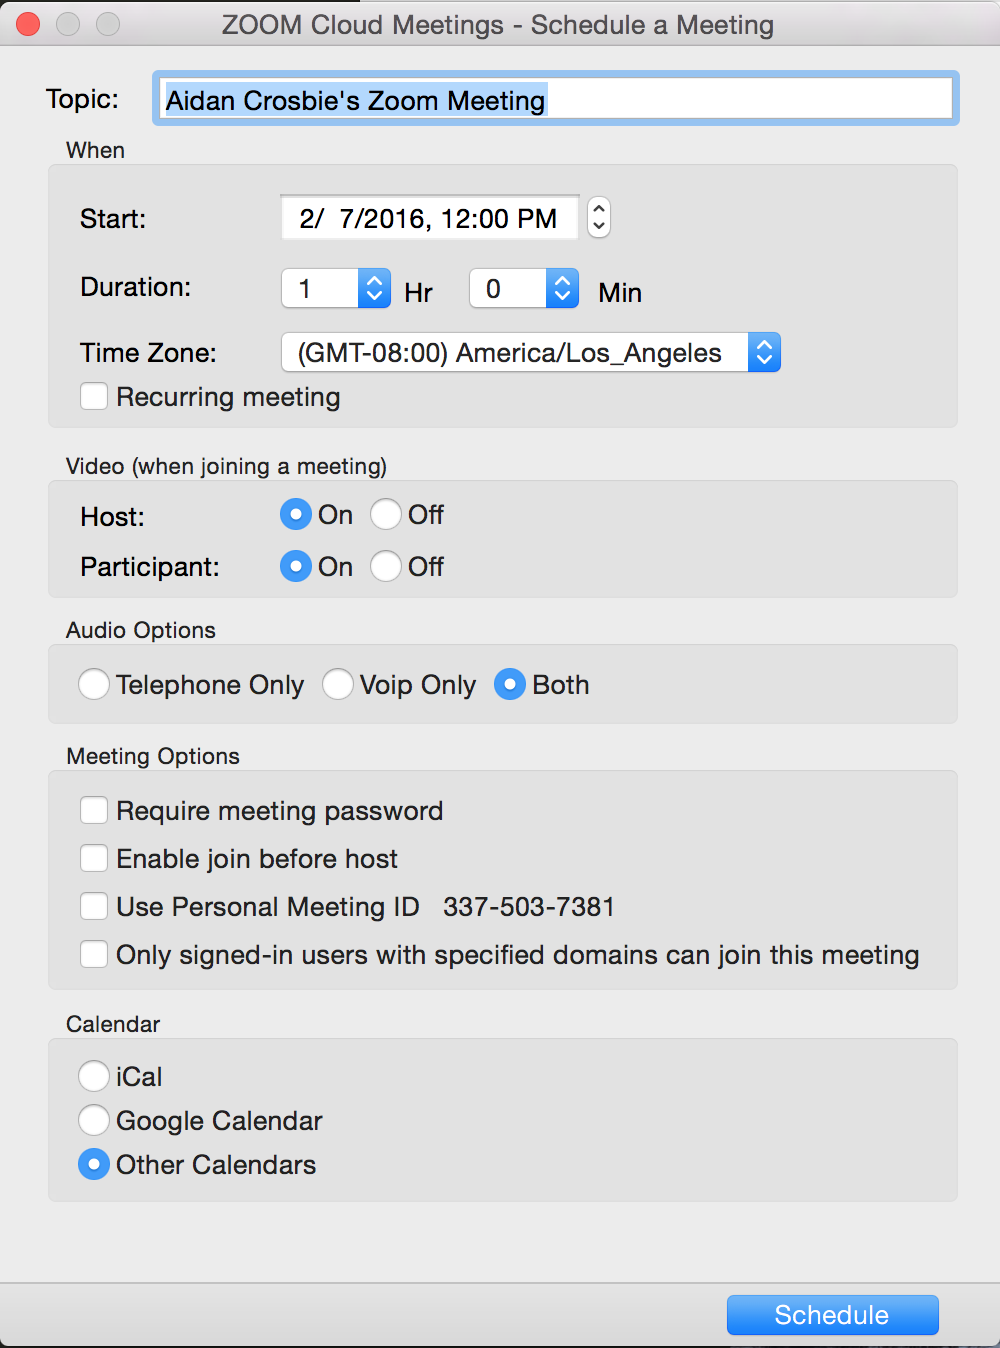 Once You Have Opened The Zoom Scheduler, You Can Select Various Settings  For Your Meeting Please Note That Meetings Can Be Started By The Host At  Any Time